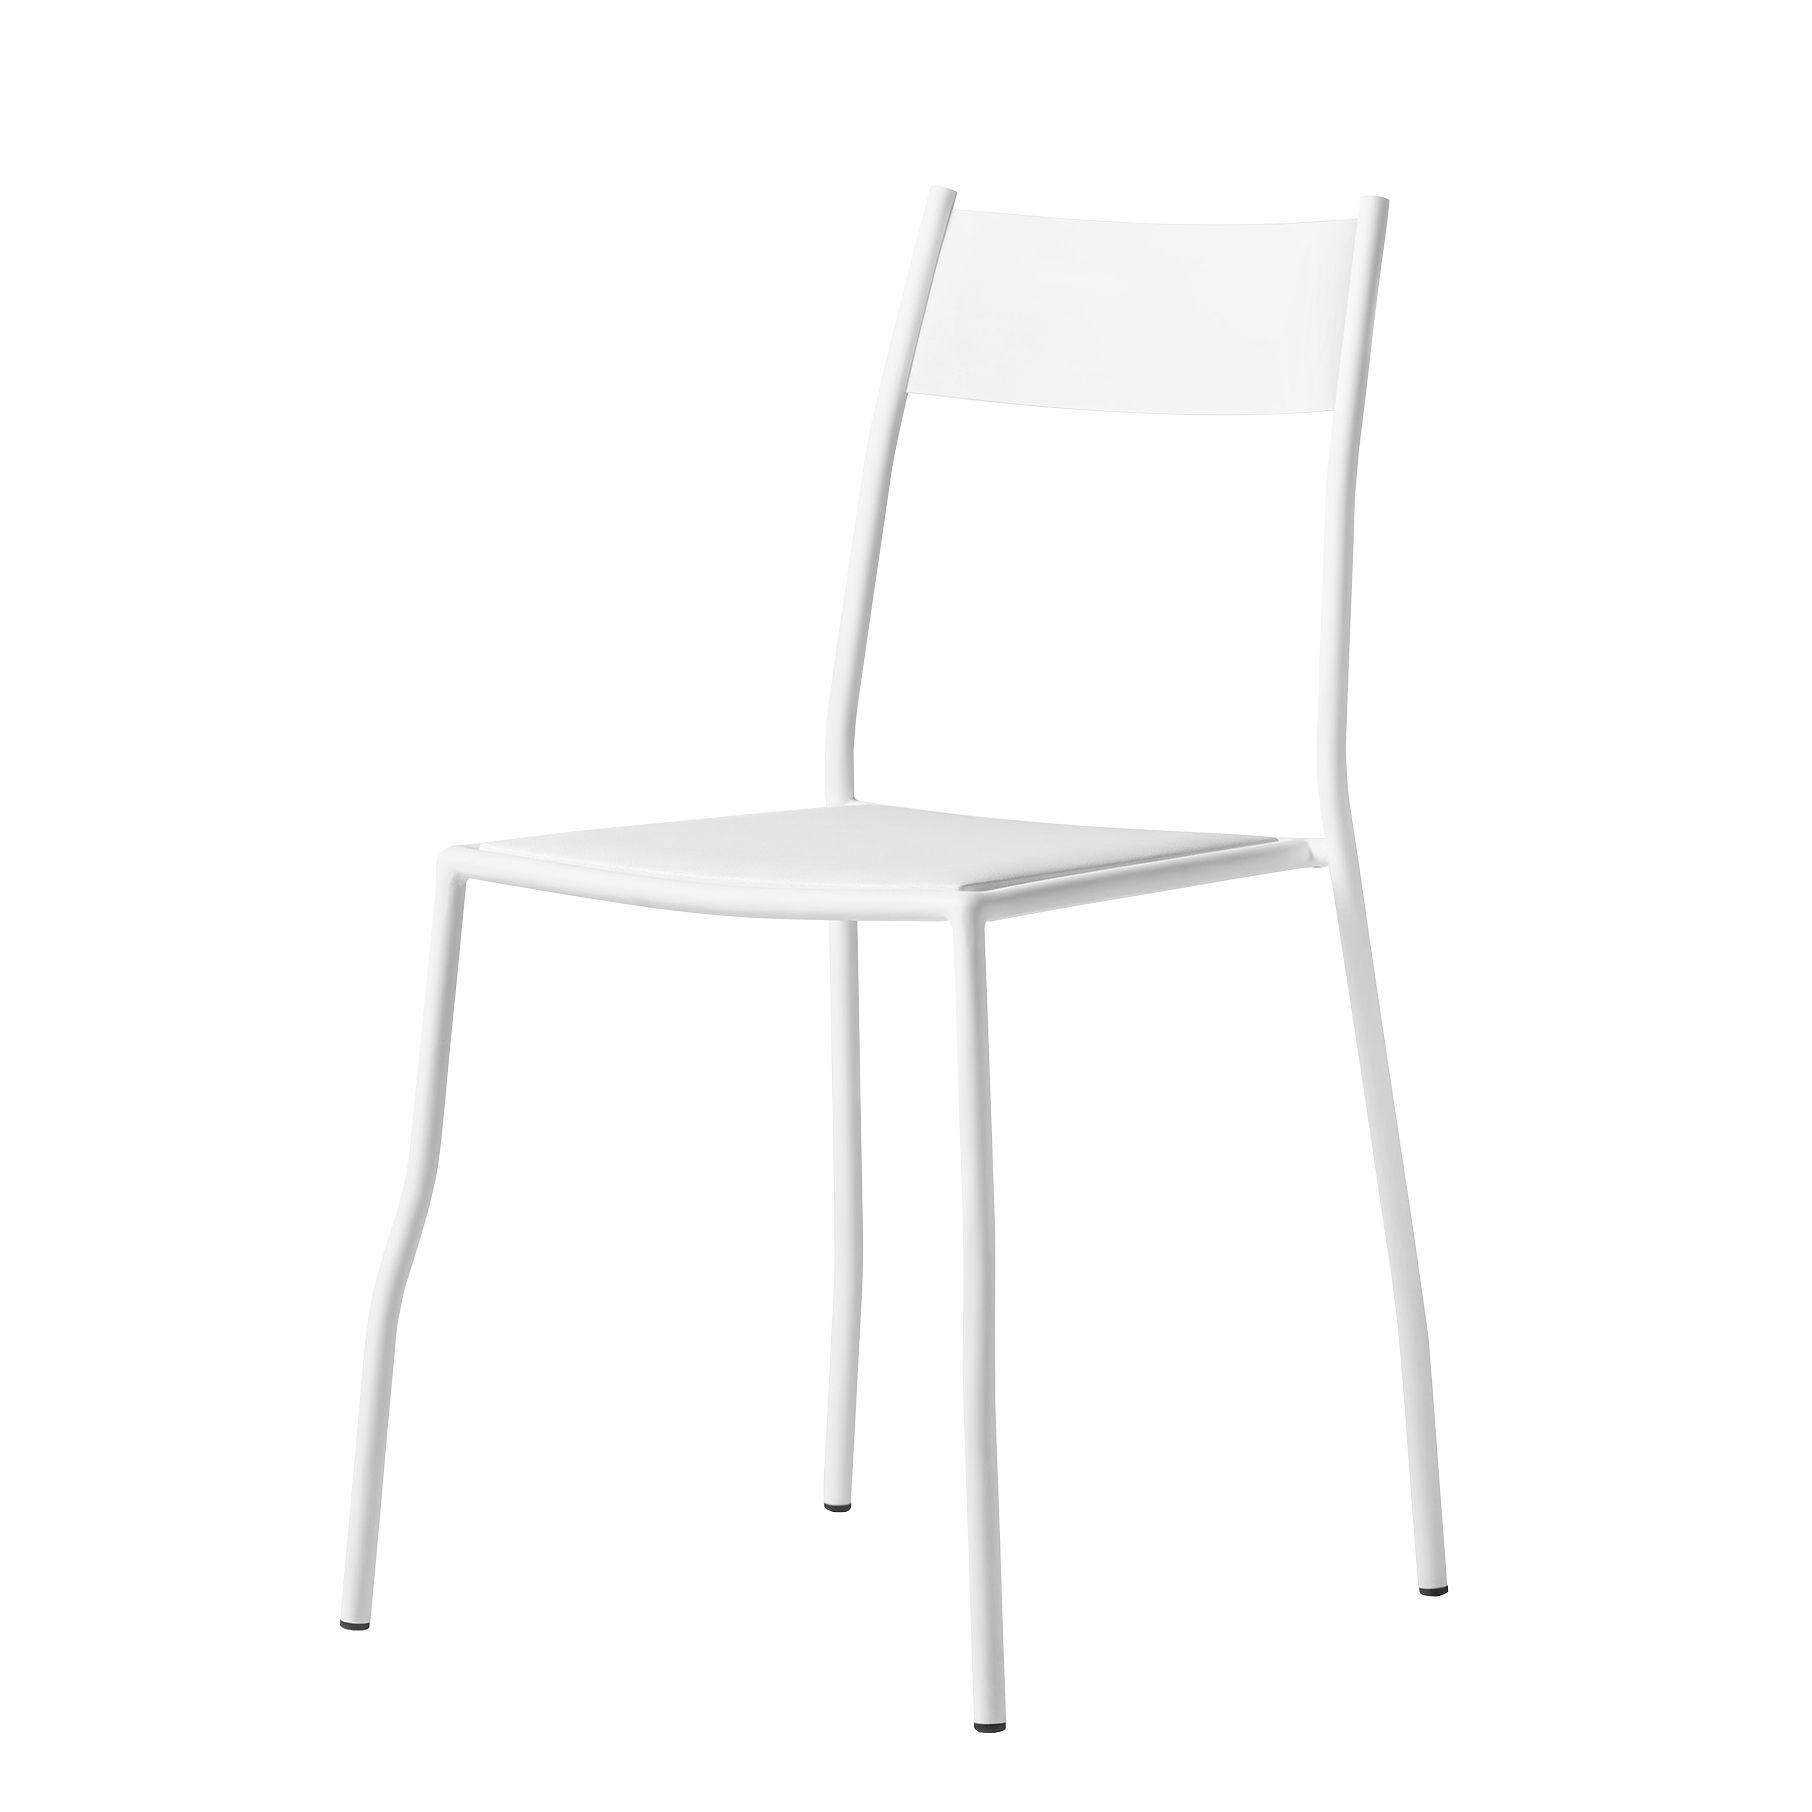 Furniture - Chairs - Primasedia Stacking chair - / Steel by Opinion Ciatti - White - Steel